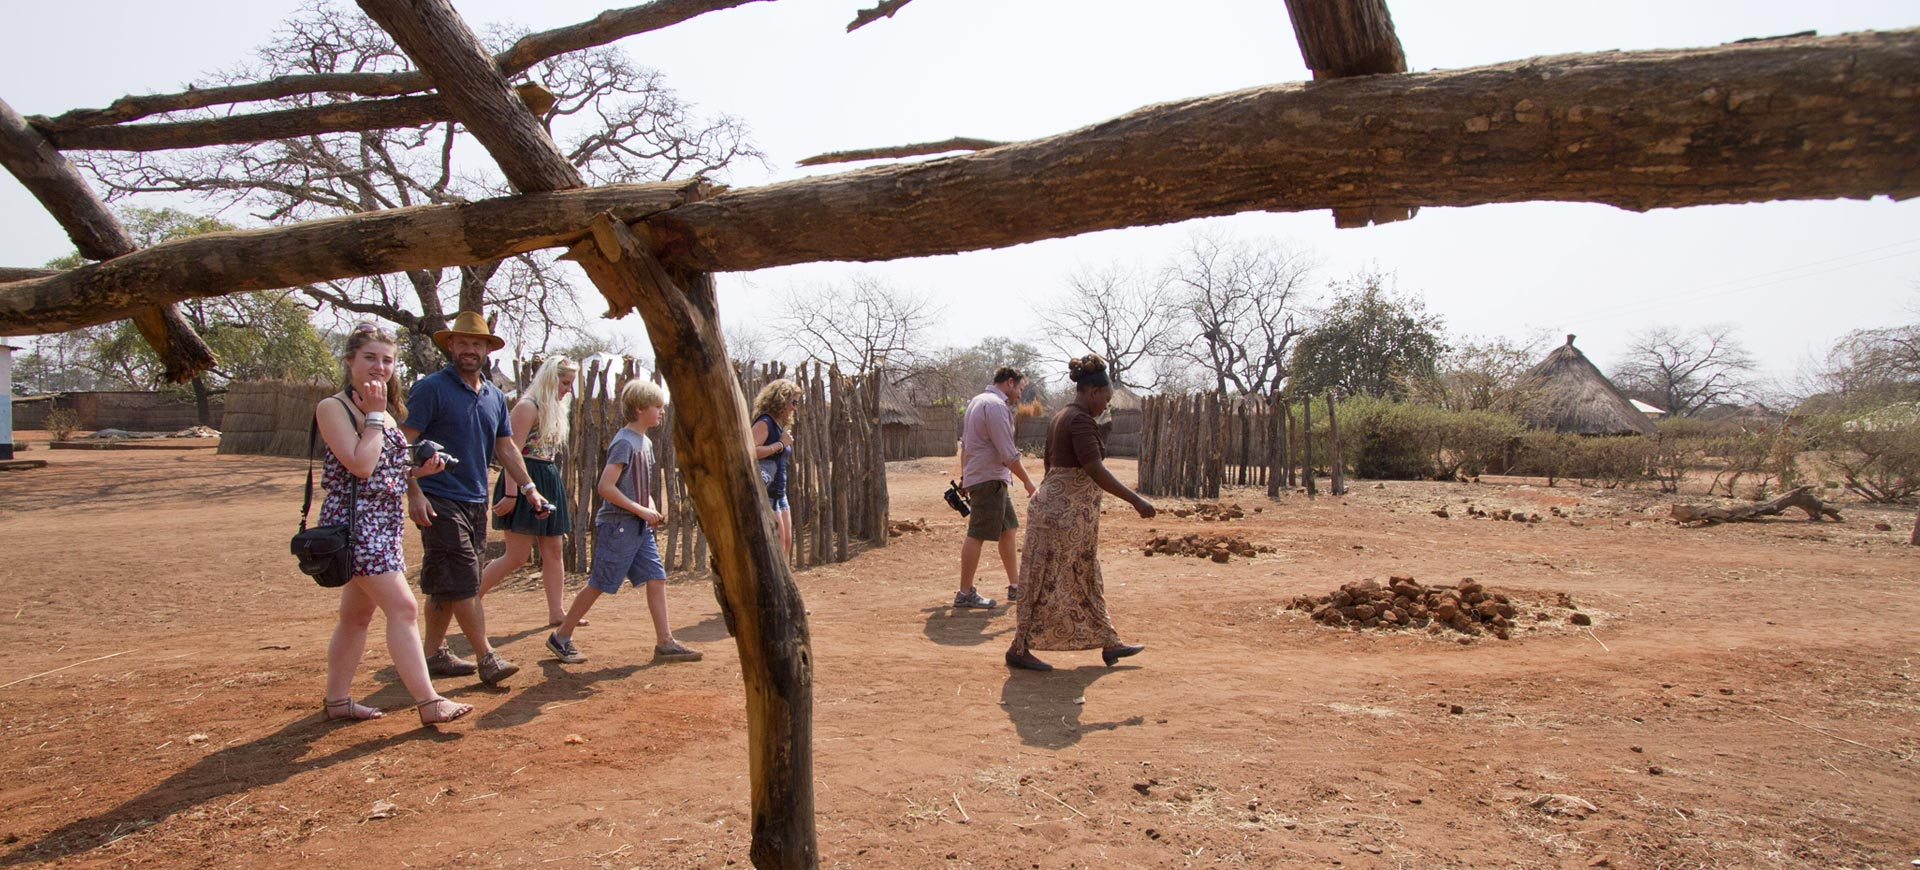 Victoria Falls Traditional Village Tour